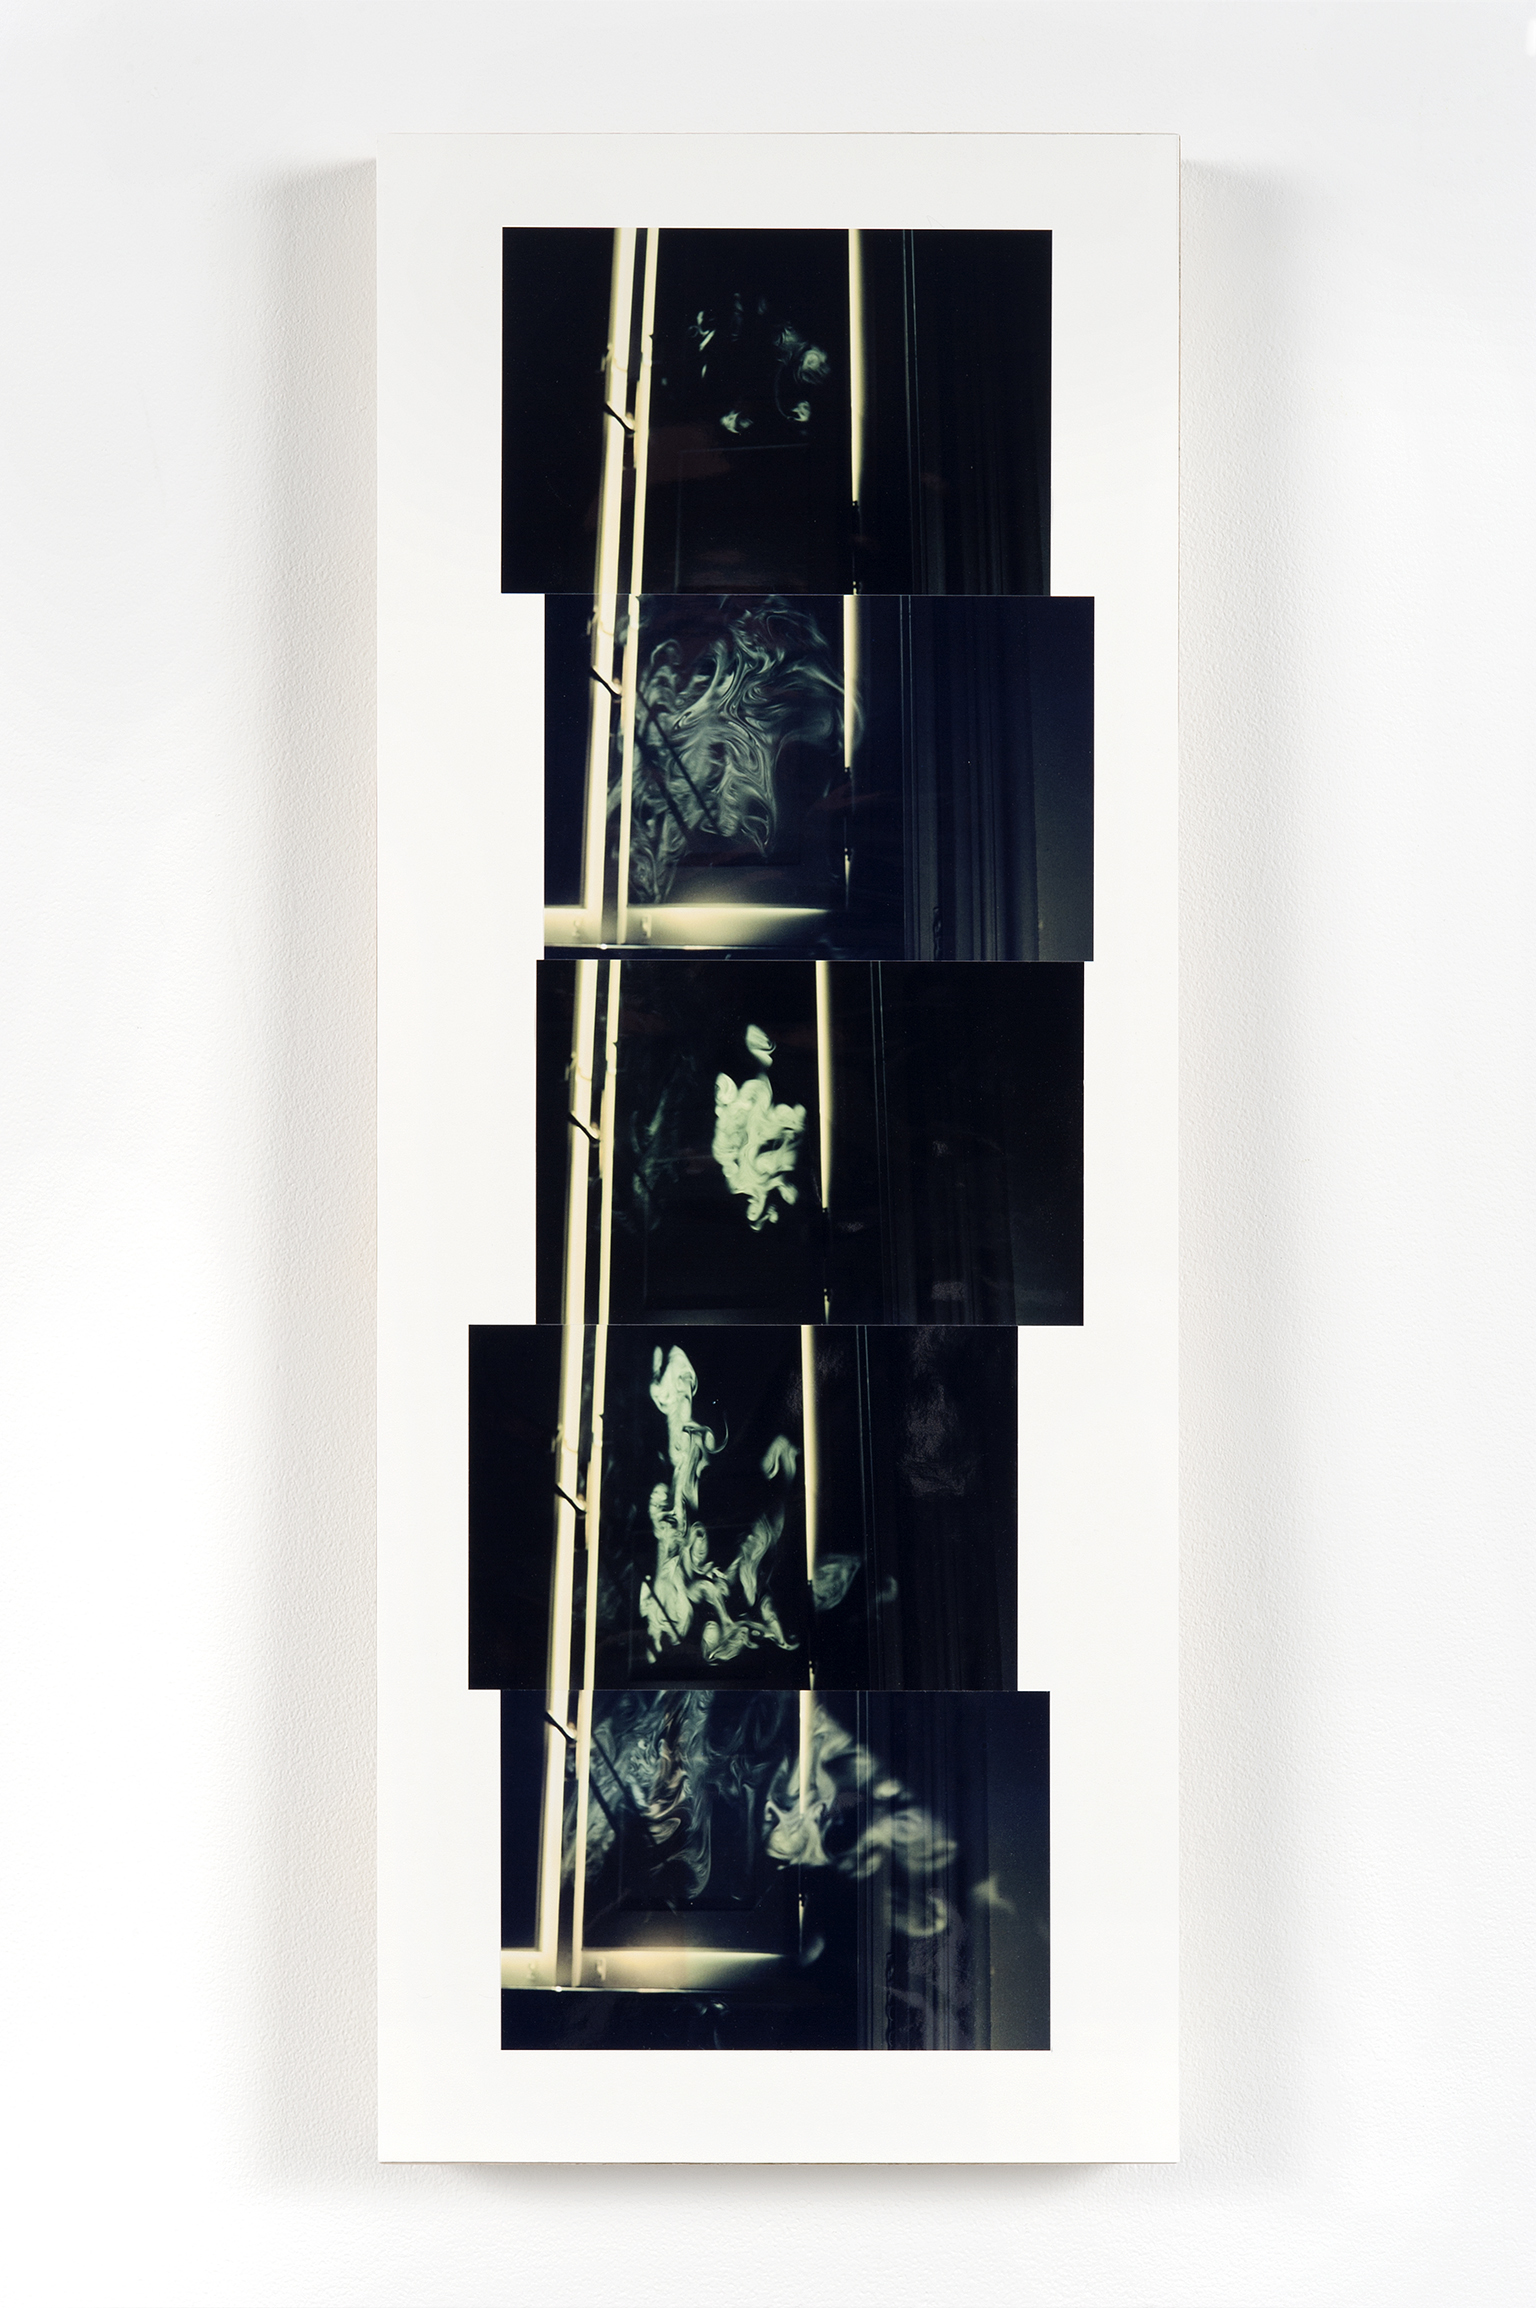 ​Robert Kleyn, Smoke, 1976–2011, colour photographs, 28 x 11 in. (70 x 27 cm) by